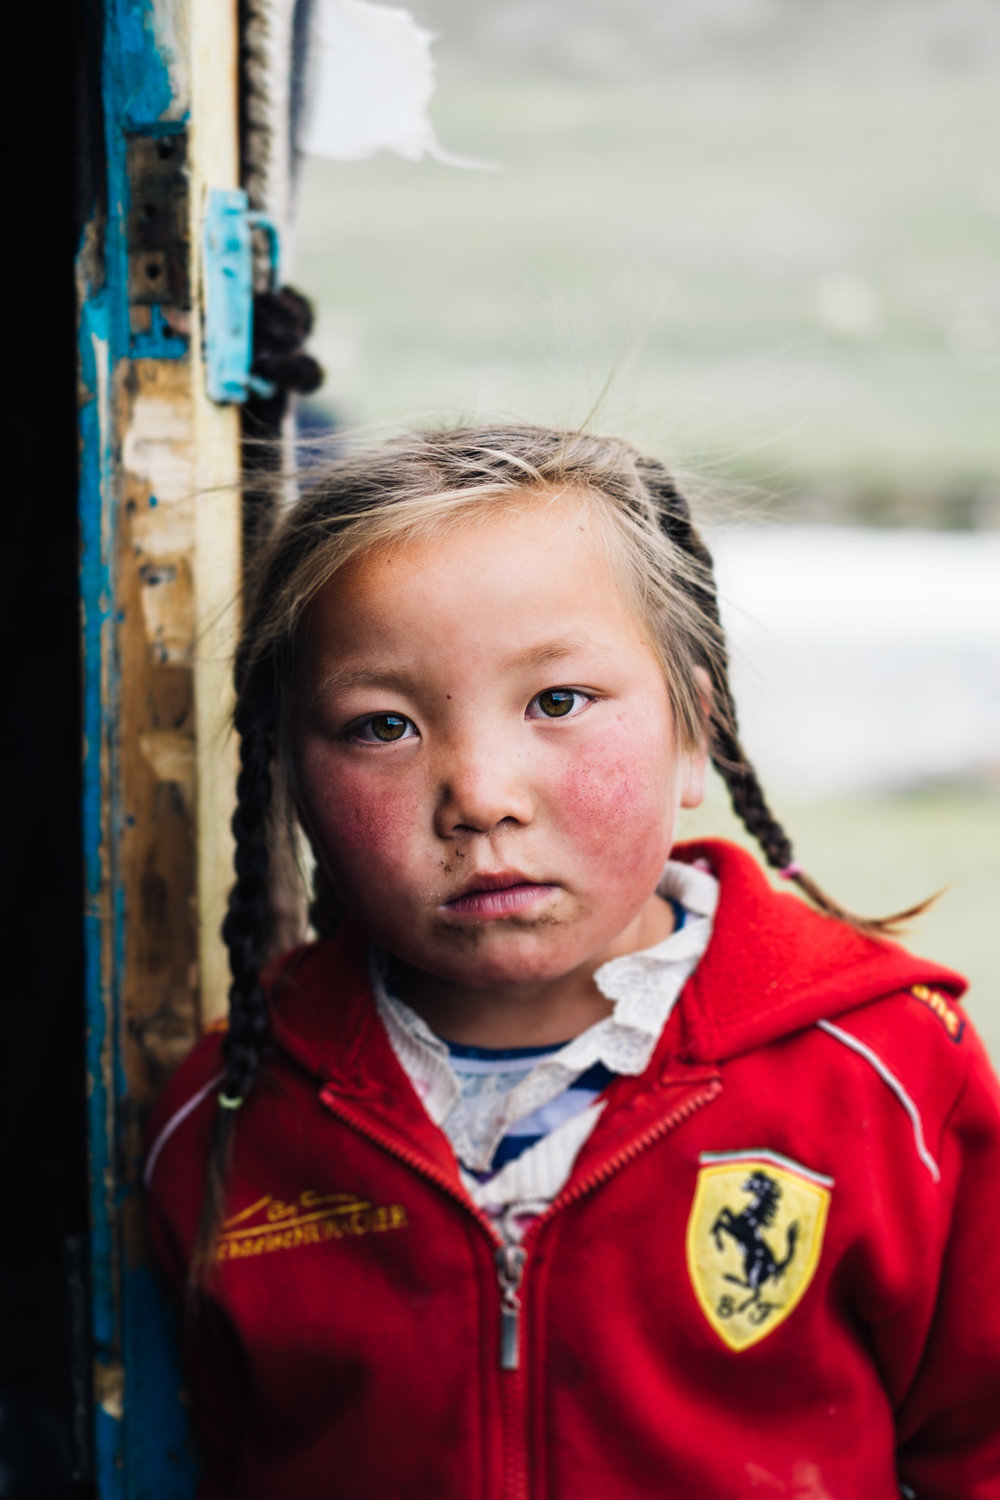 Mongolia Girl (1 of 1).jpg